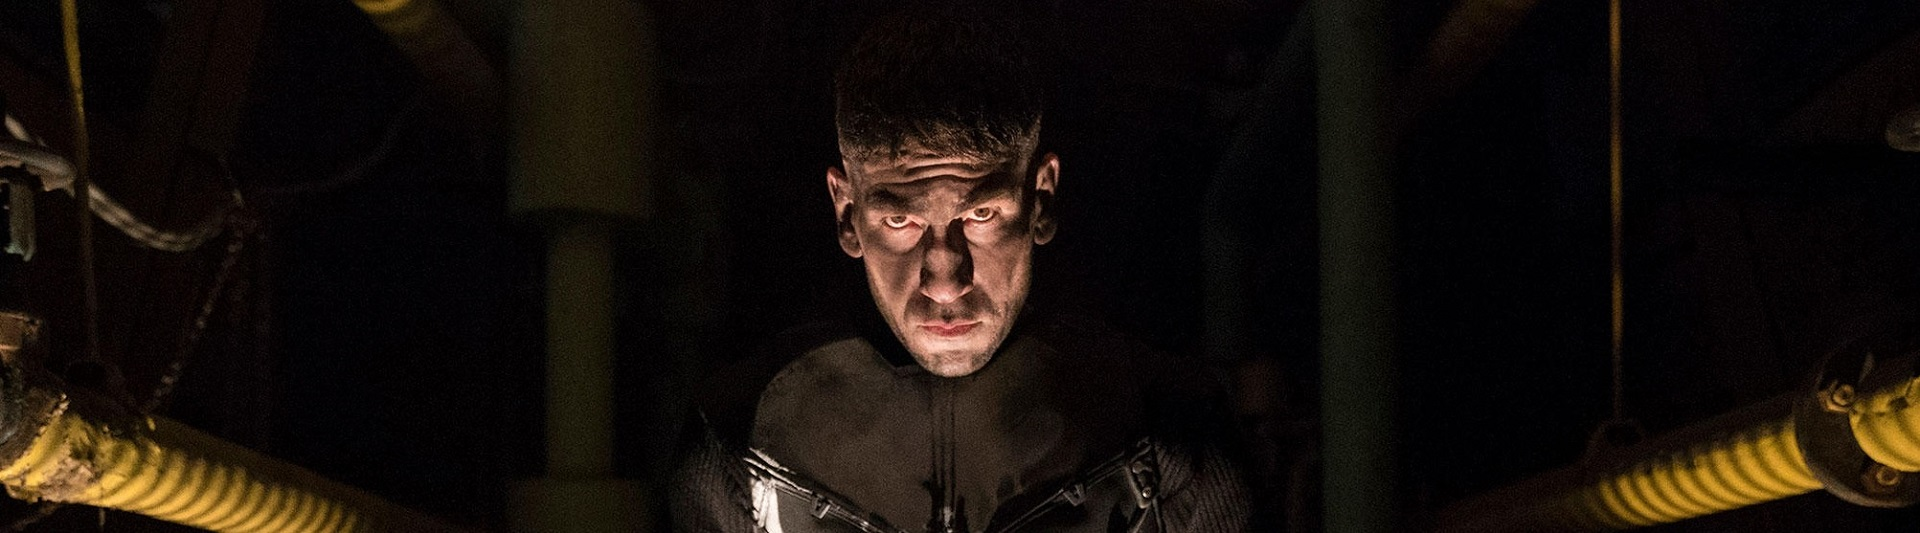 Punisher New Trailer Release Date